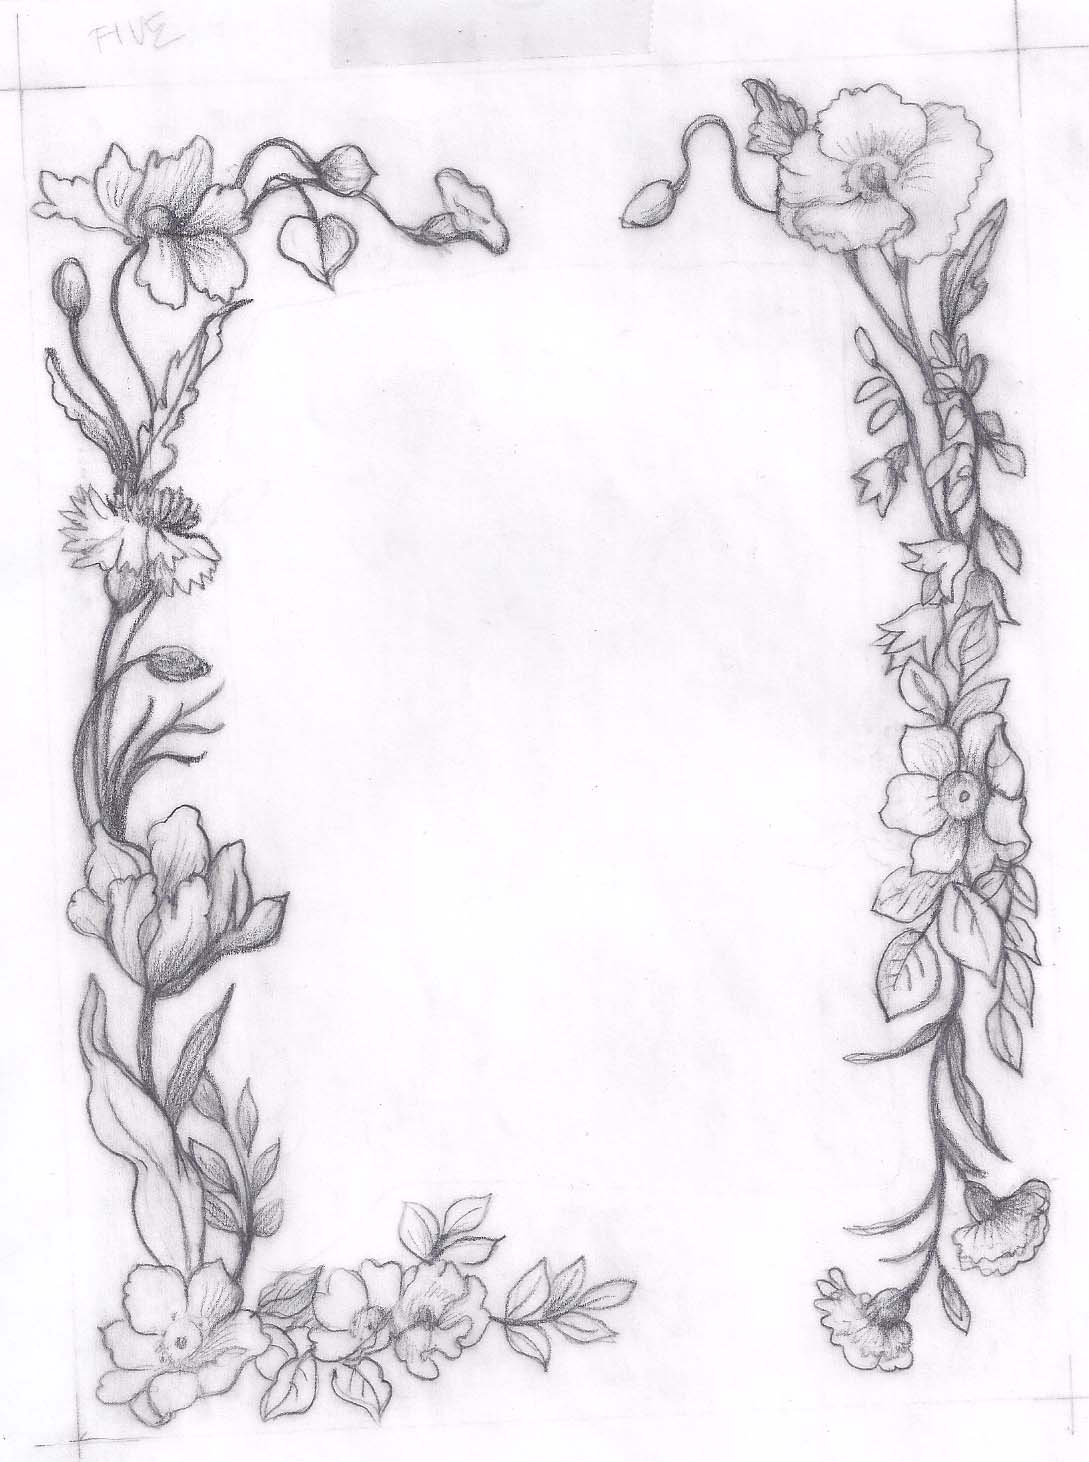 Asketchaday-ConnecticutRamblings POPPY SKETCH